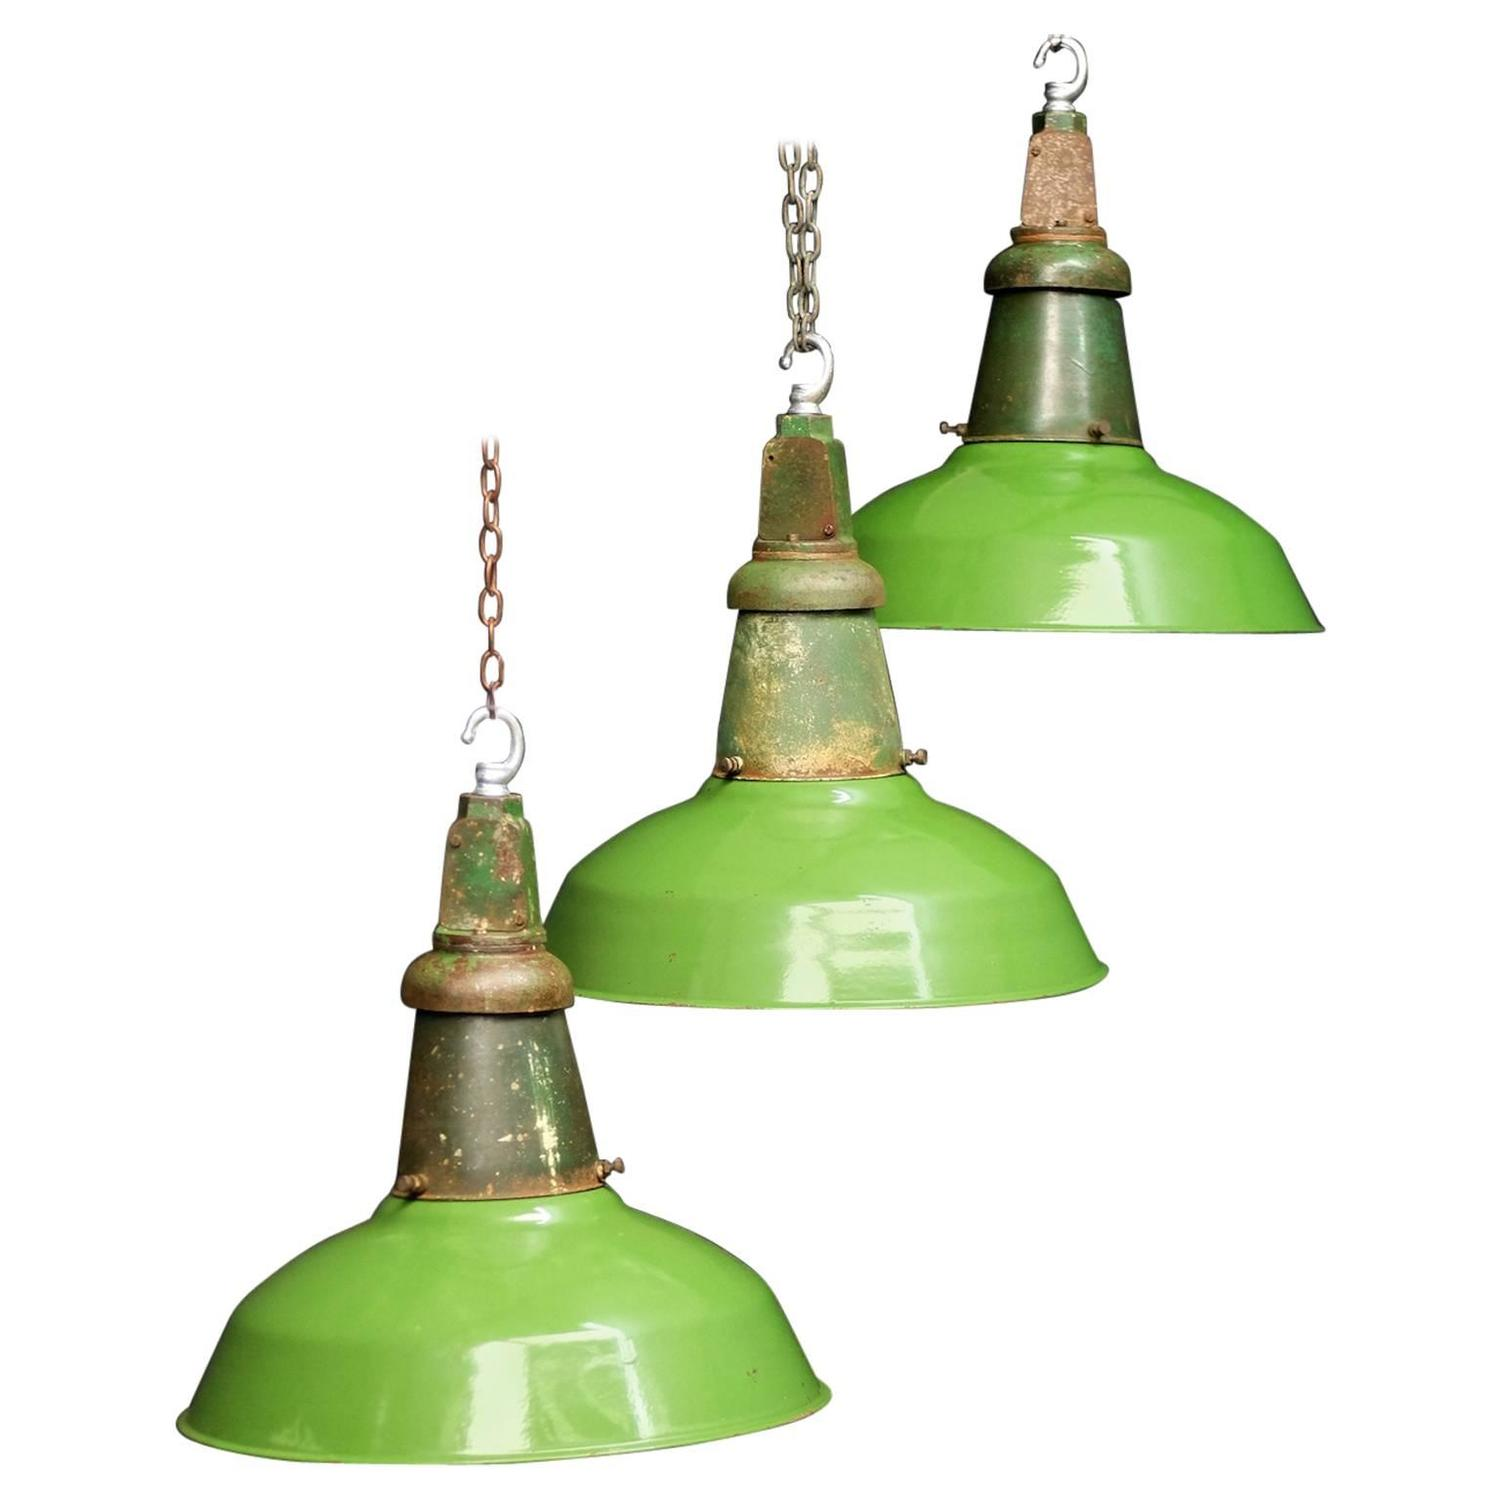 Wardle of Manchester industrial pendants, 1940